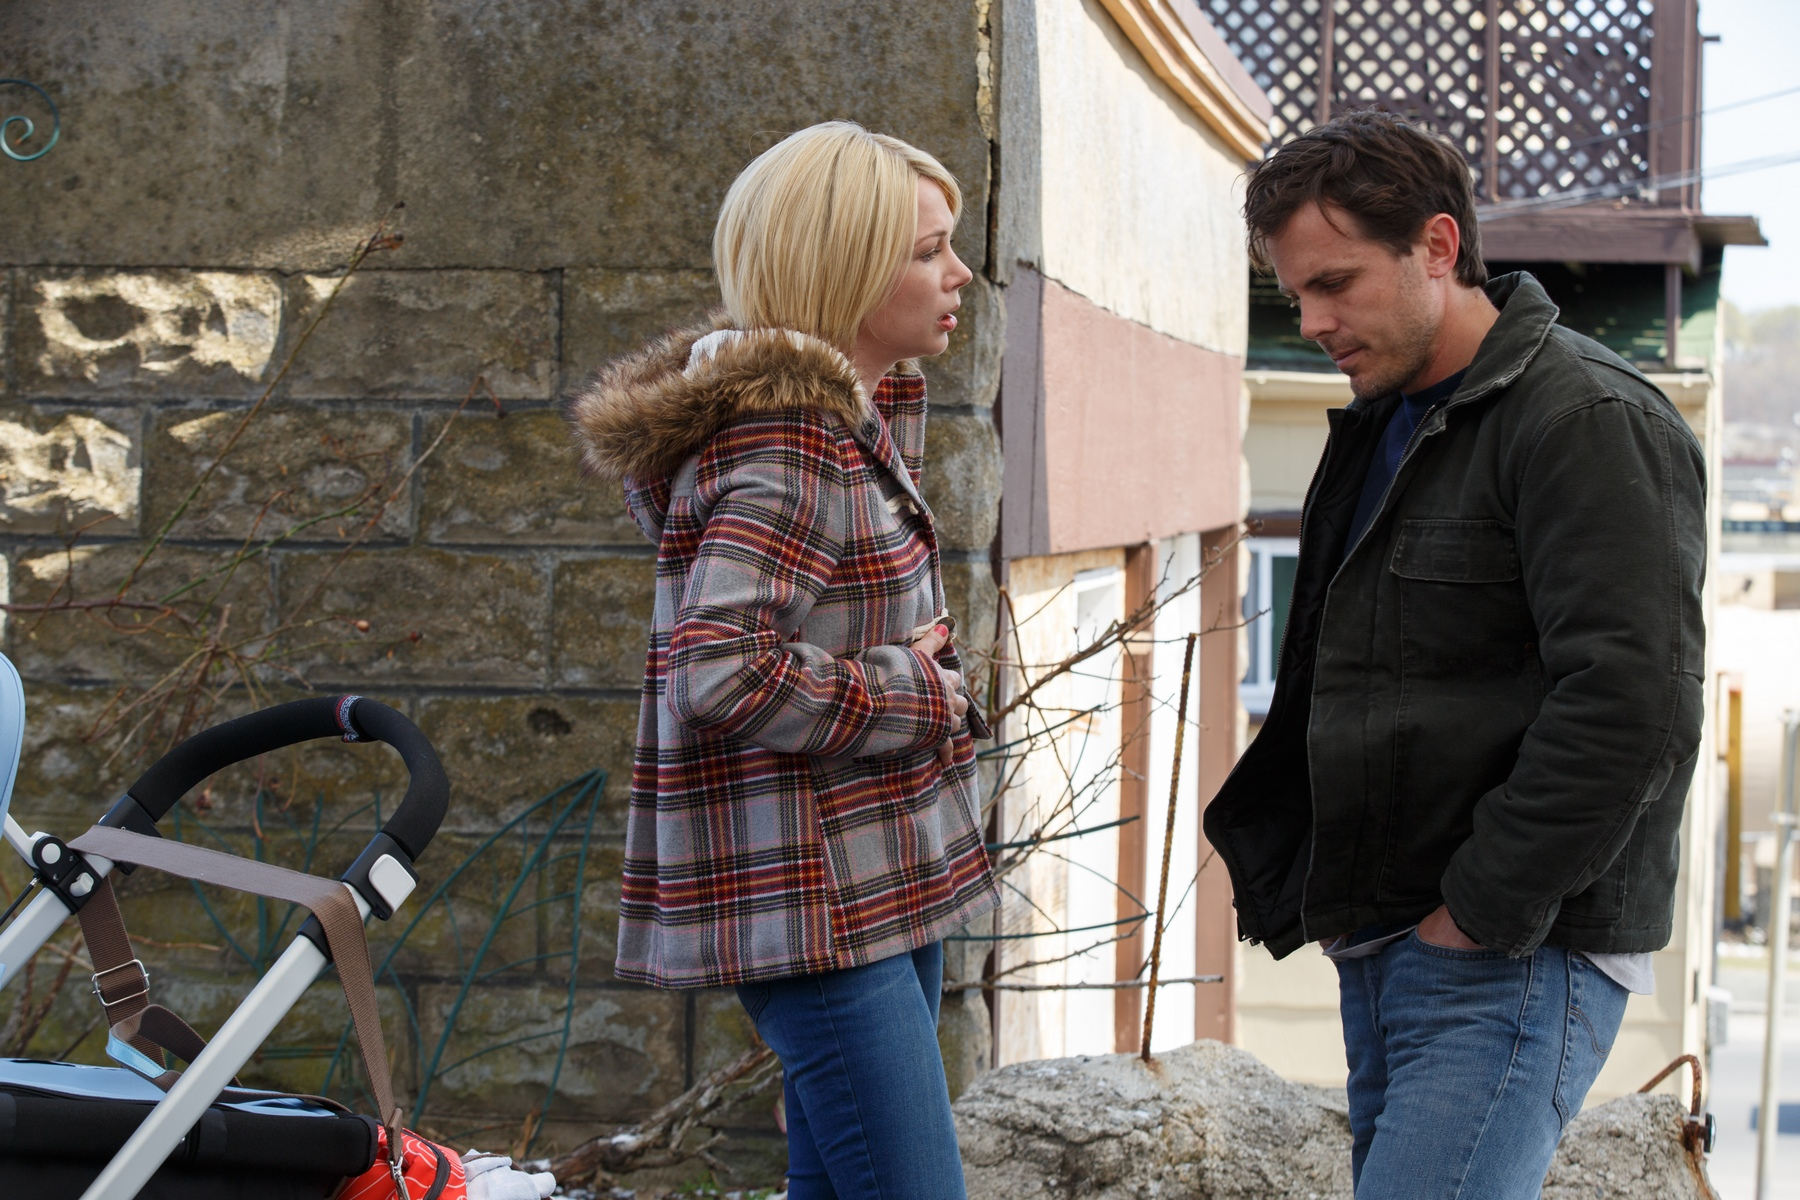 Manchester By the Sea - Amanda welcomes back Stephen and Chris I to discuss the Awards Season stalwart, Manchester by the Sea. Chris finds the film to have the most honest portrayal of loss she's ever seen in a movie, Stephen listens to see if other movie goers are crying, and Amanda dives into the debate between art vs the artist.